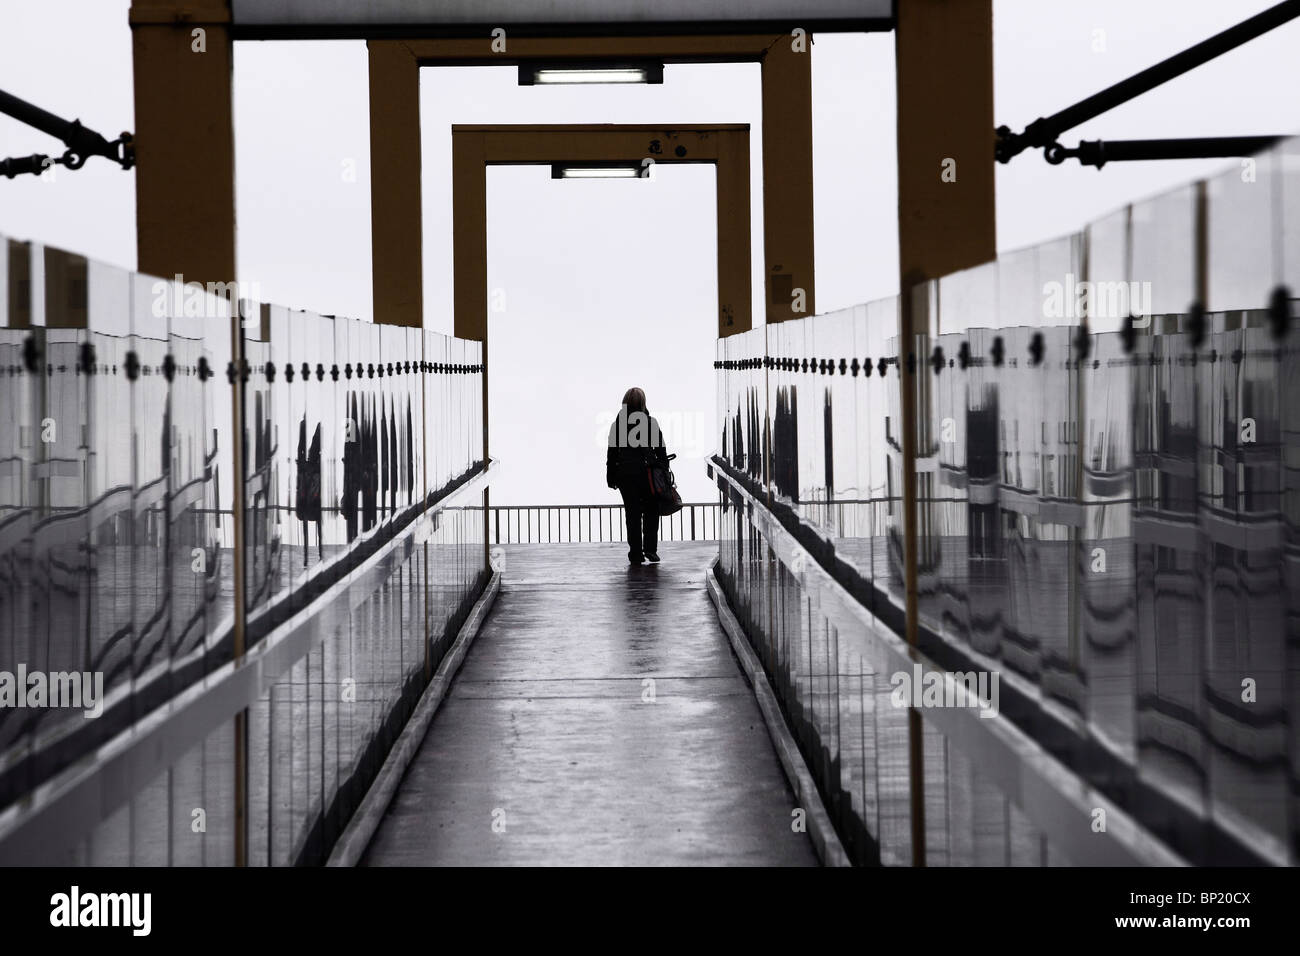 Exit of a subway station. One single person is leaving the walk way. Germany. - Stock Image